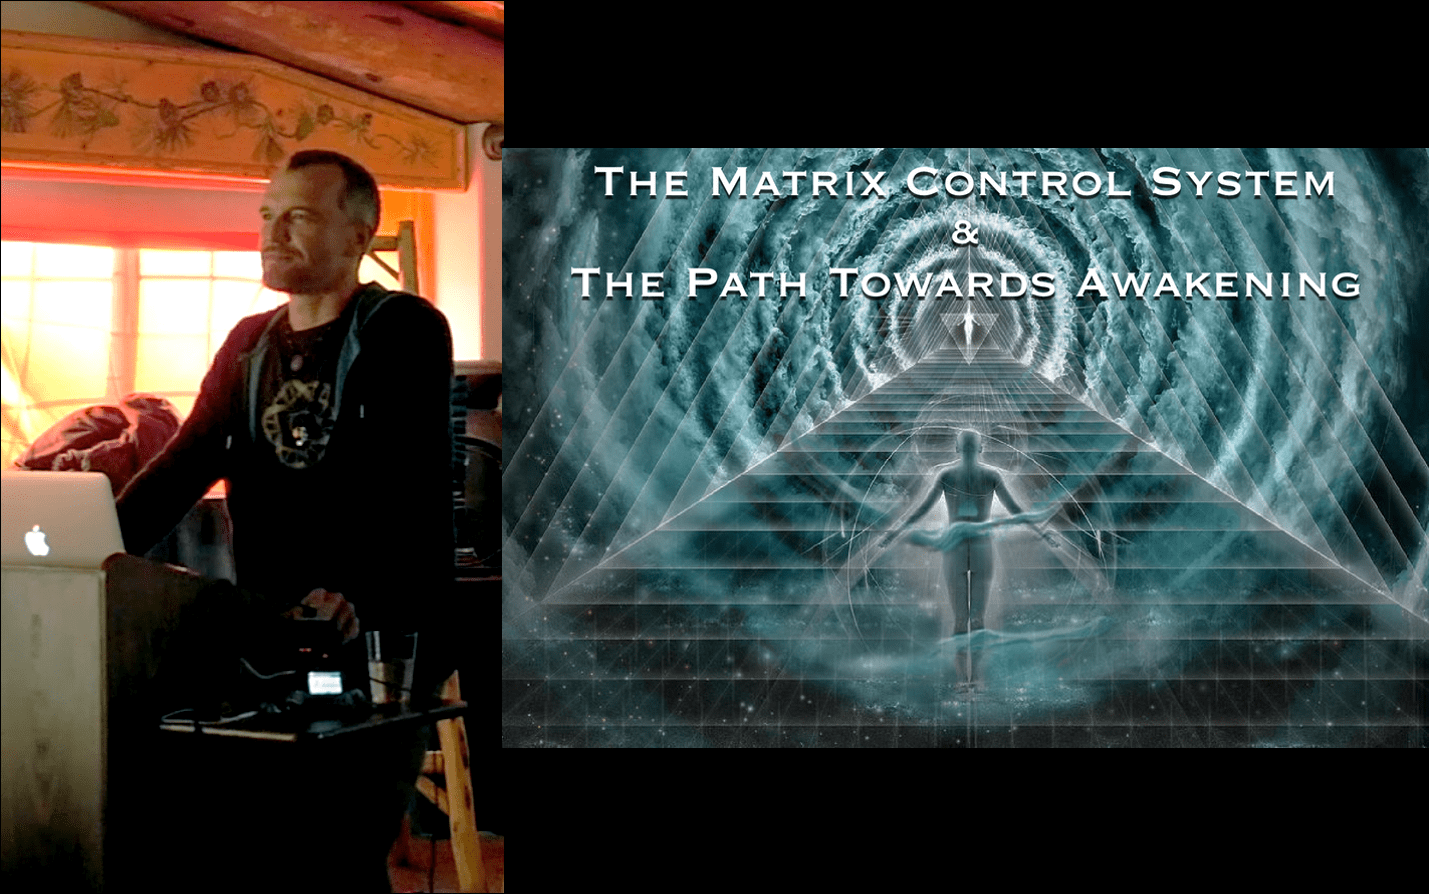 The Matrix Control System & The Path Towards Awakening – Bernhard Guenther (video)